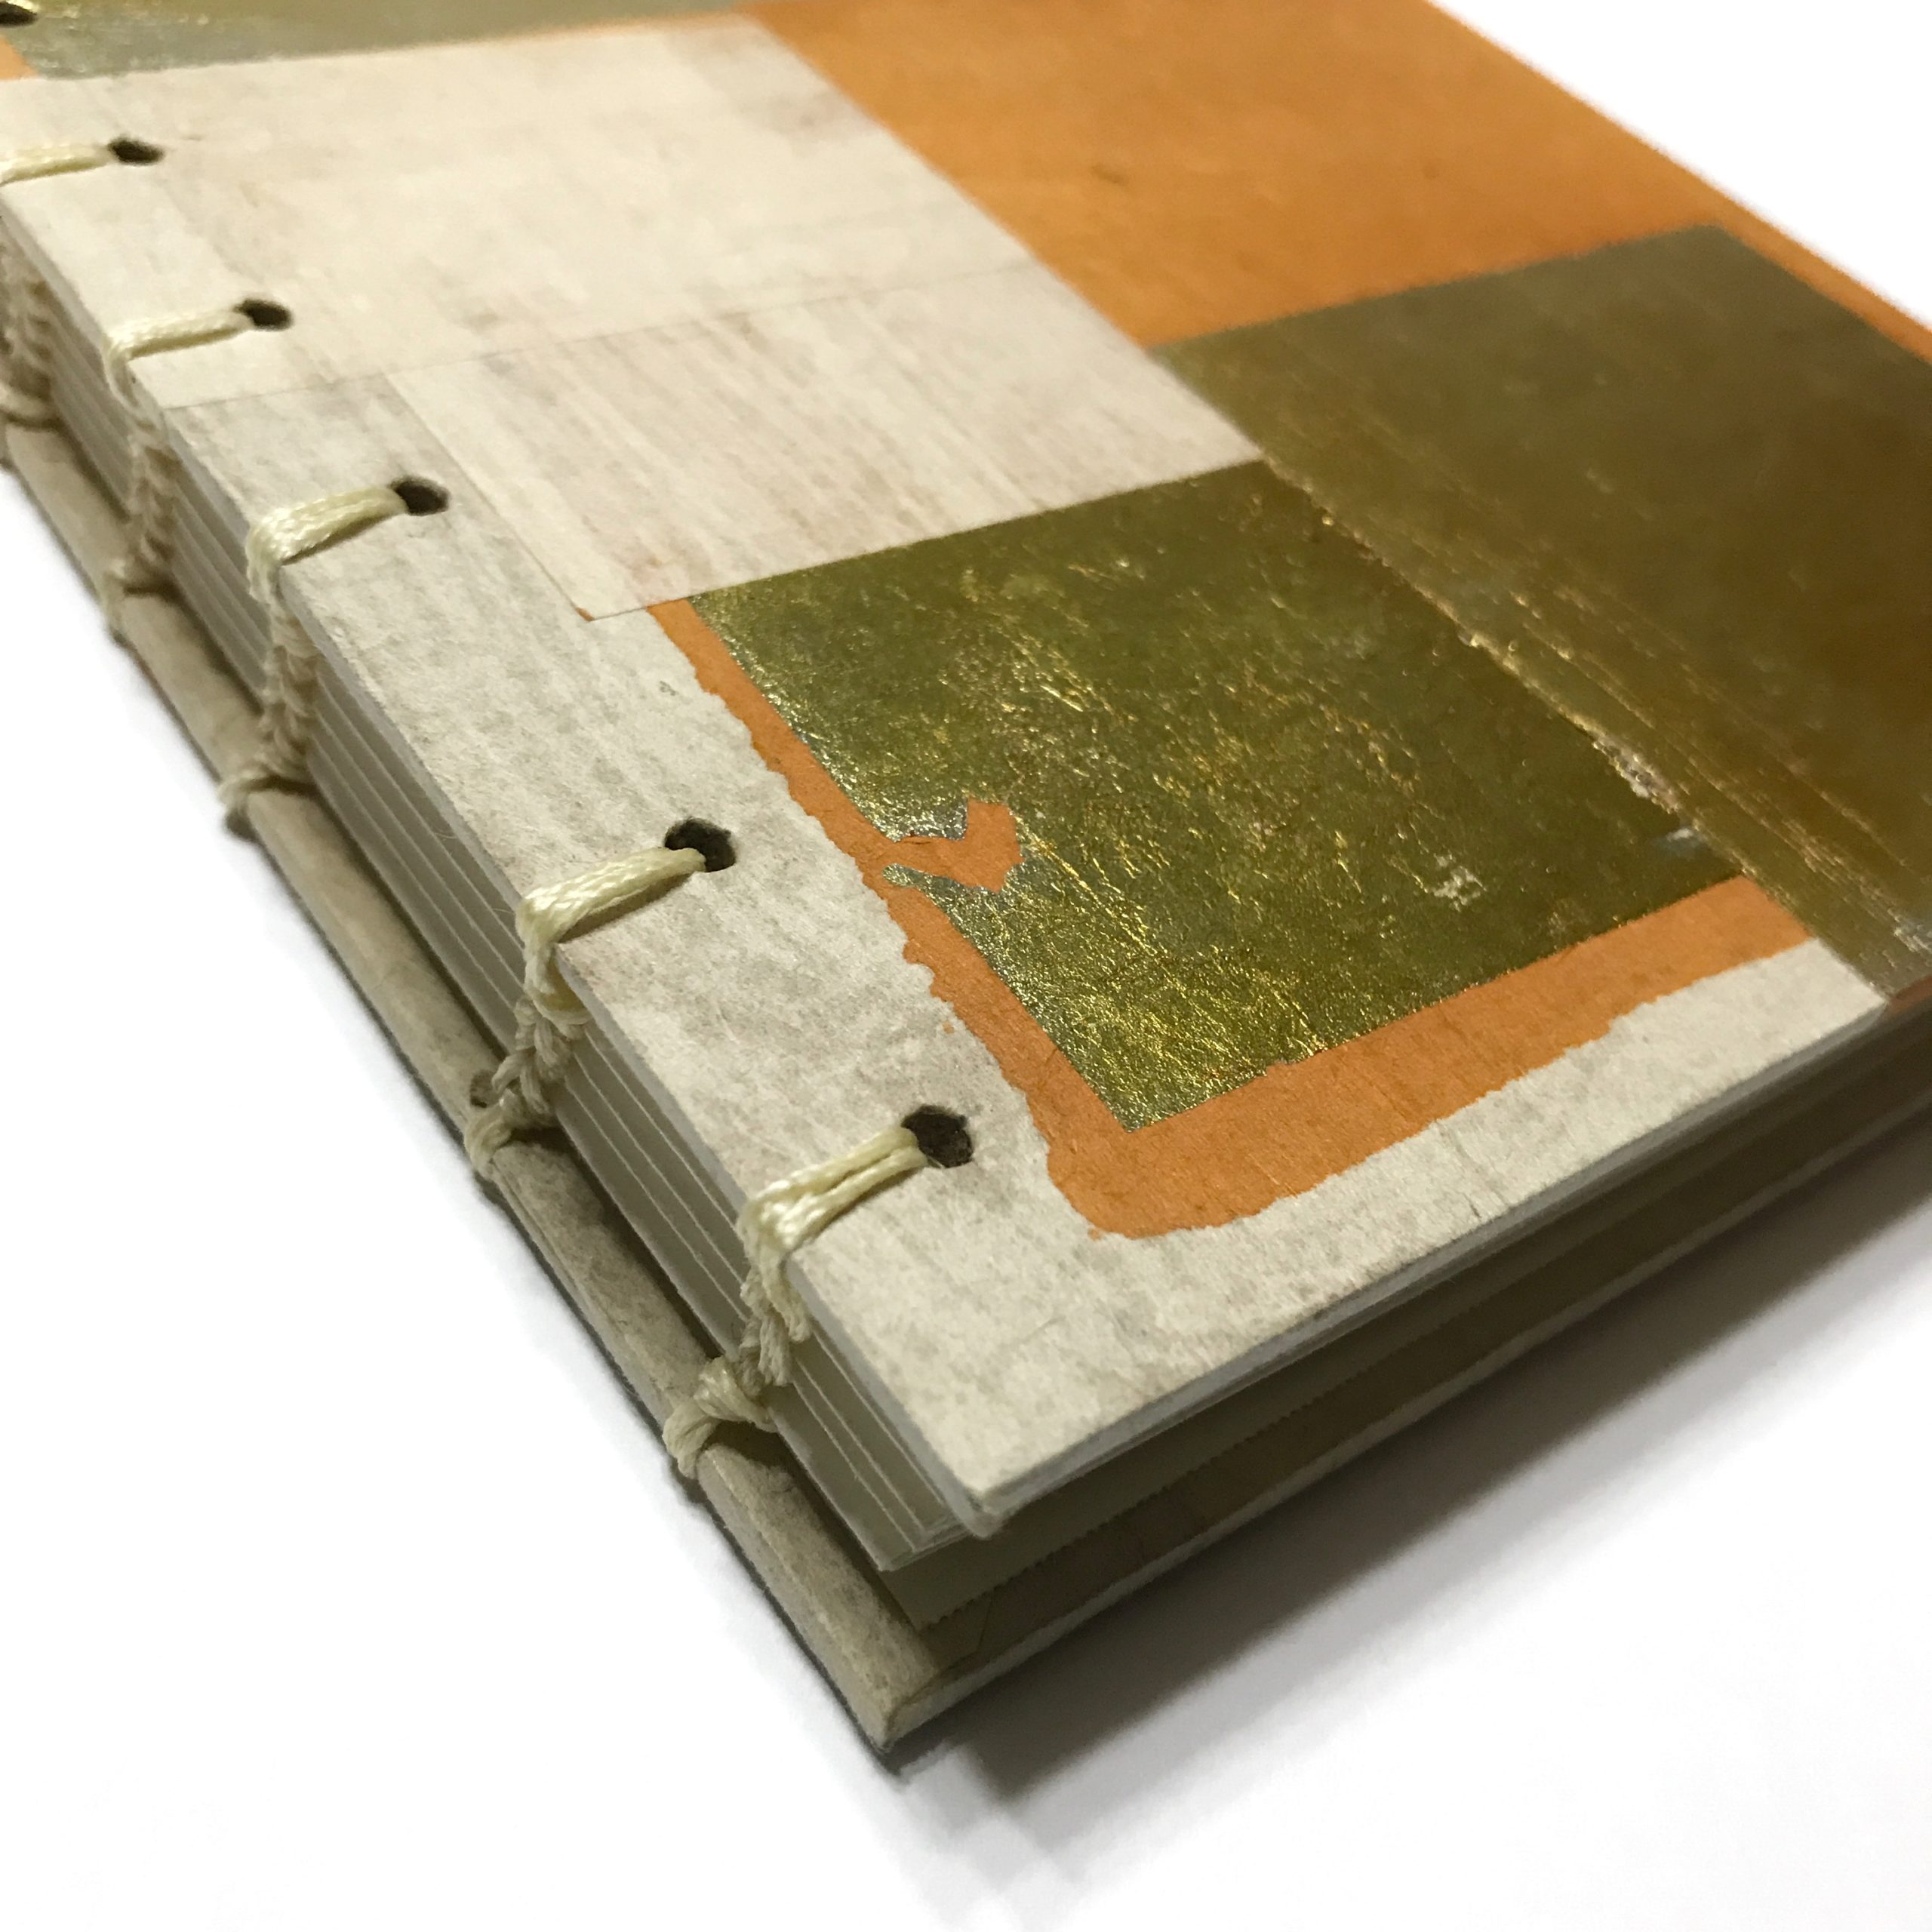 Closeup of cover of sketchbook with gold leaf and orange design